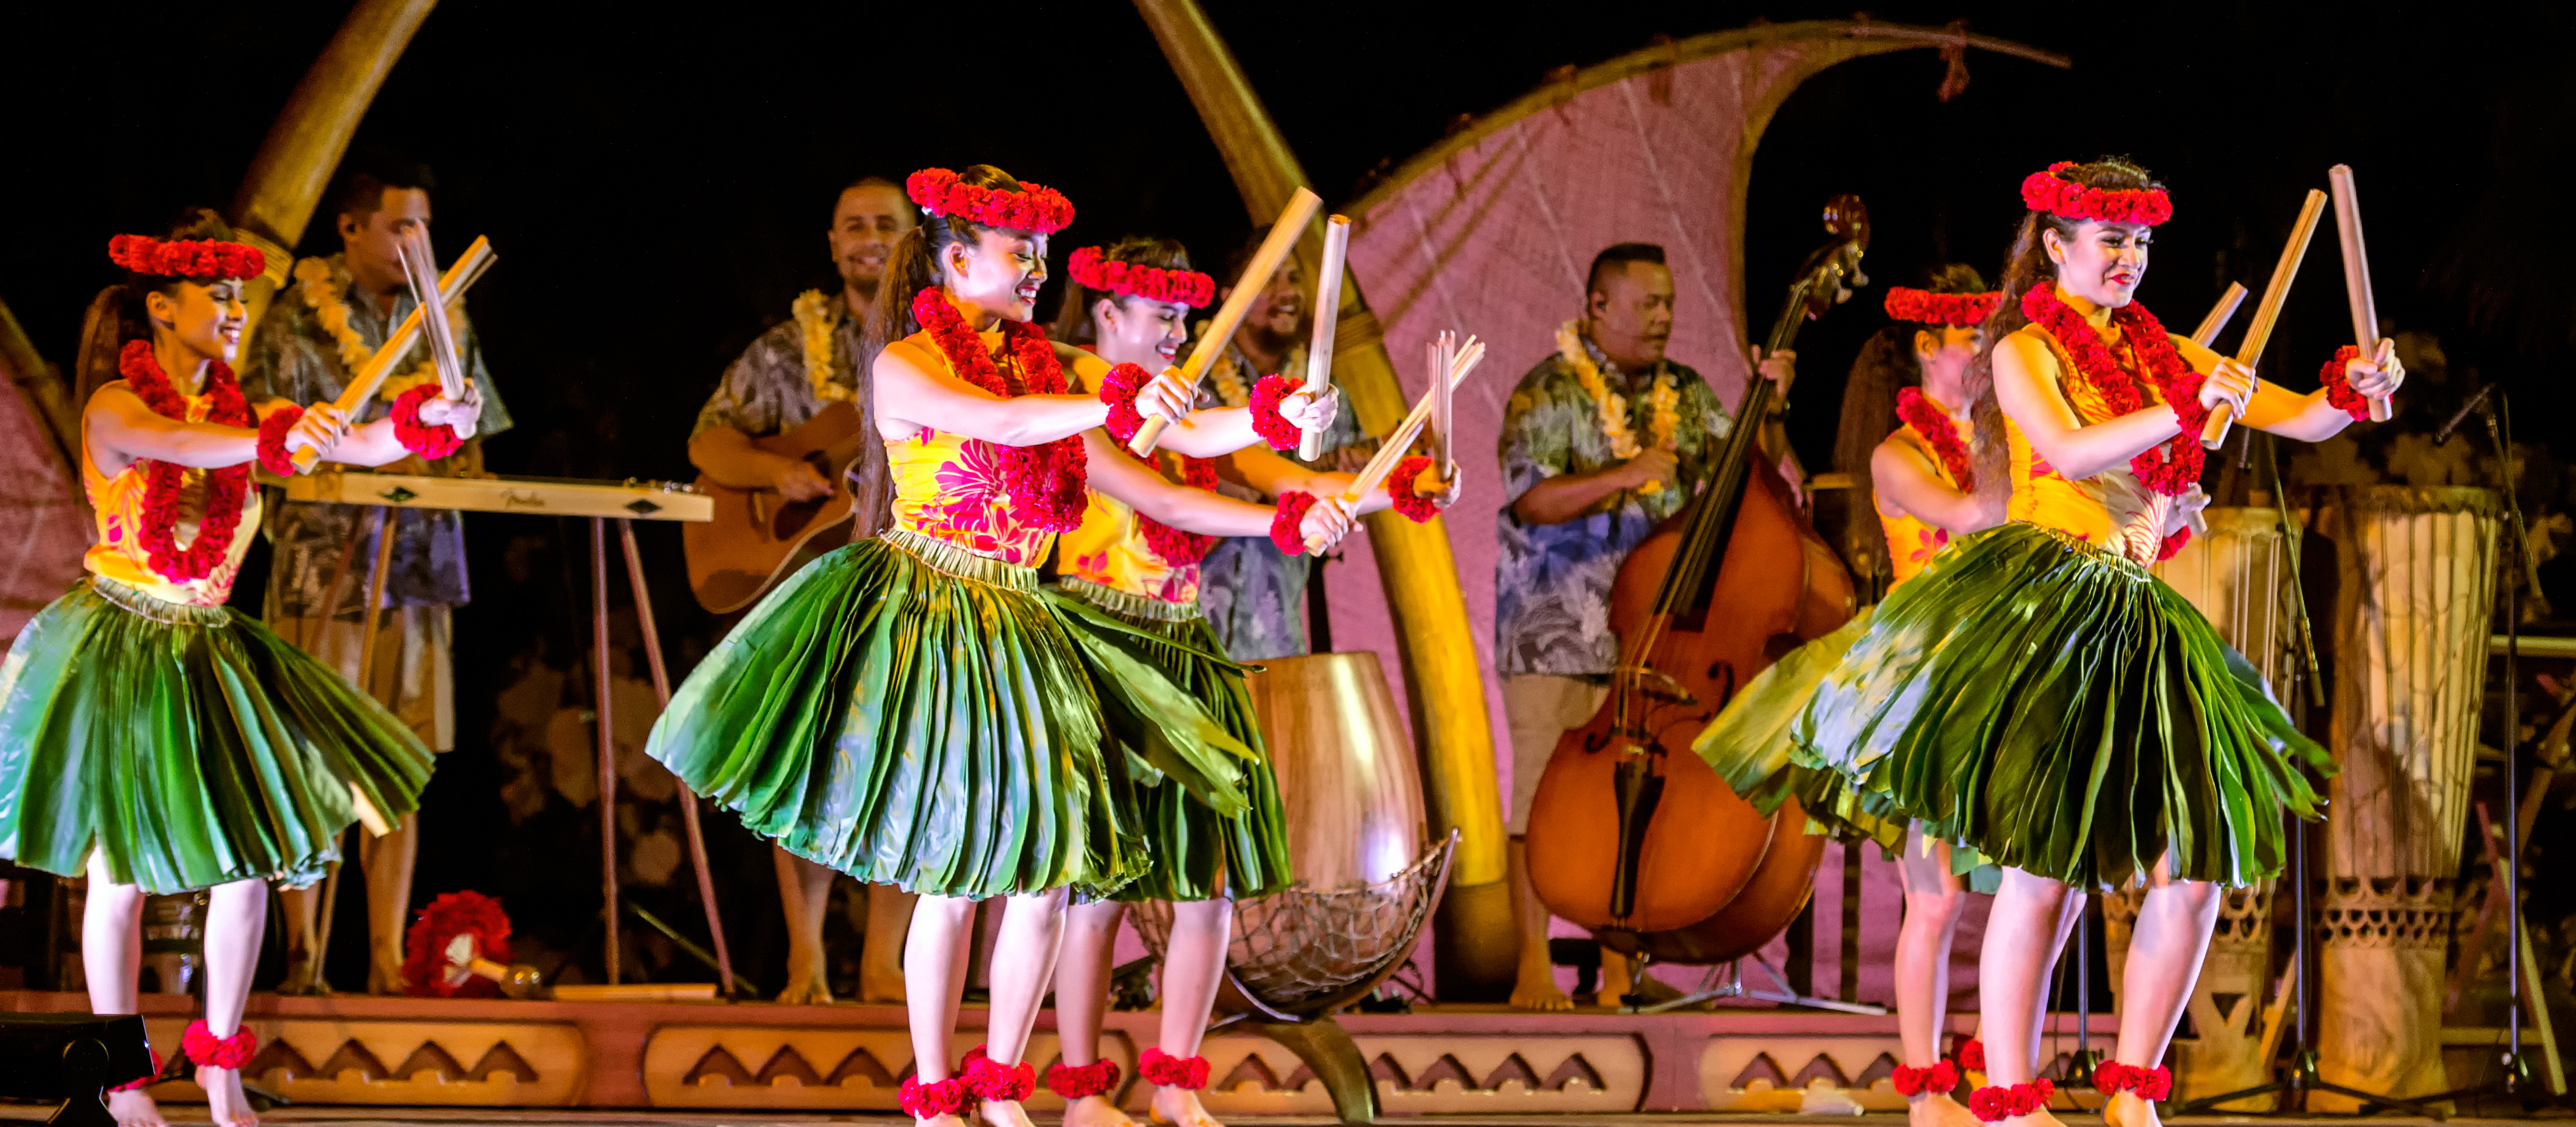 Hawaiian dancers in skirts made of leaves, leis and headdresses perform a dance using bamboo sticks to accompany the band behind them.